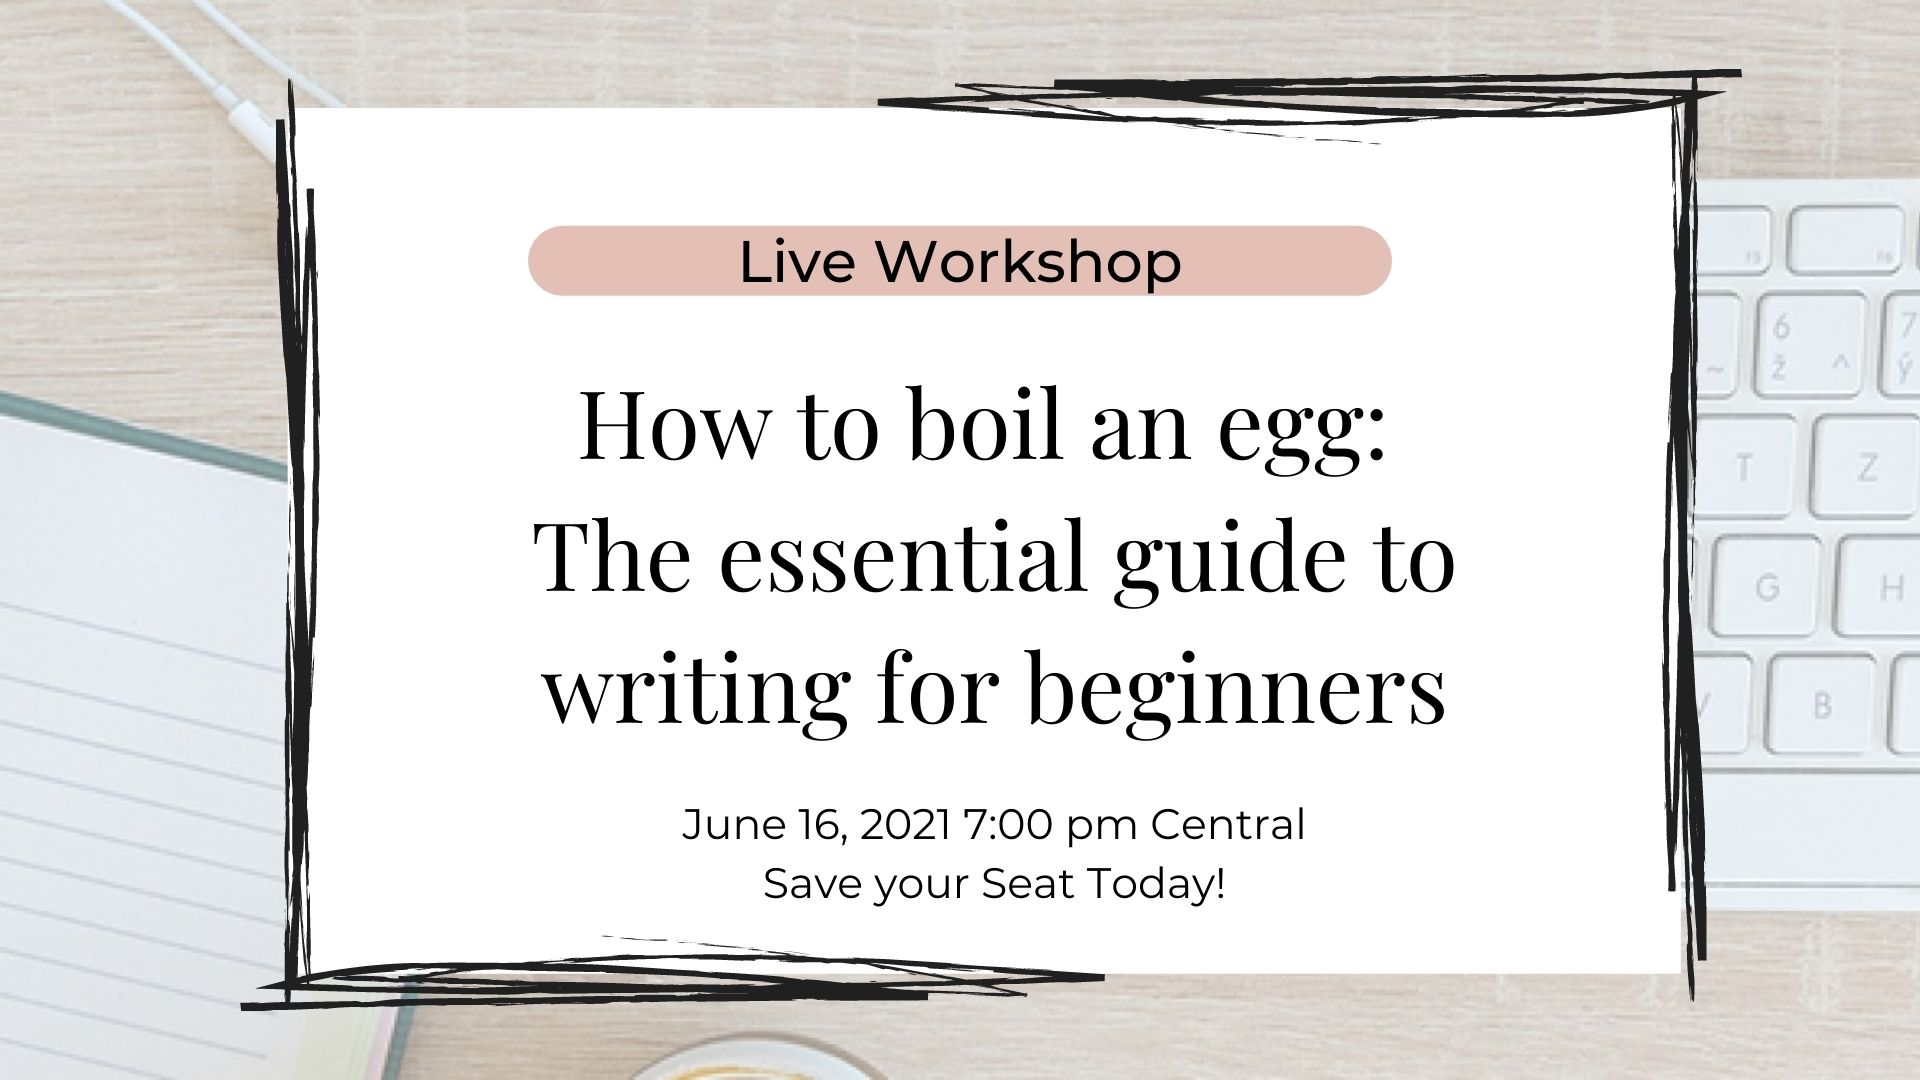 How to boil an egg workshop